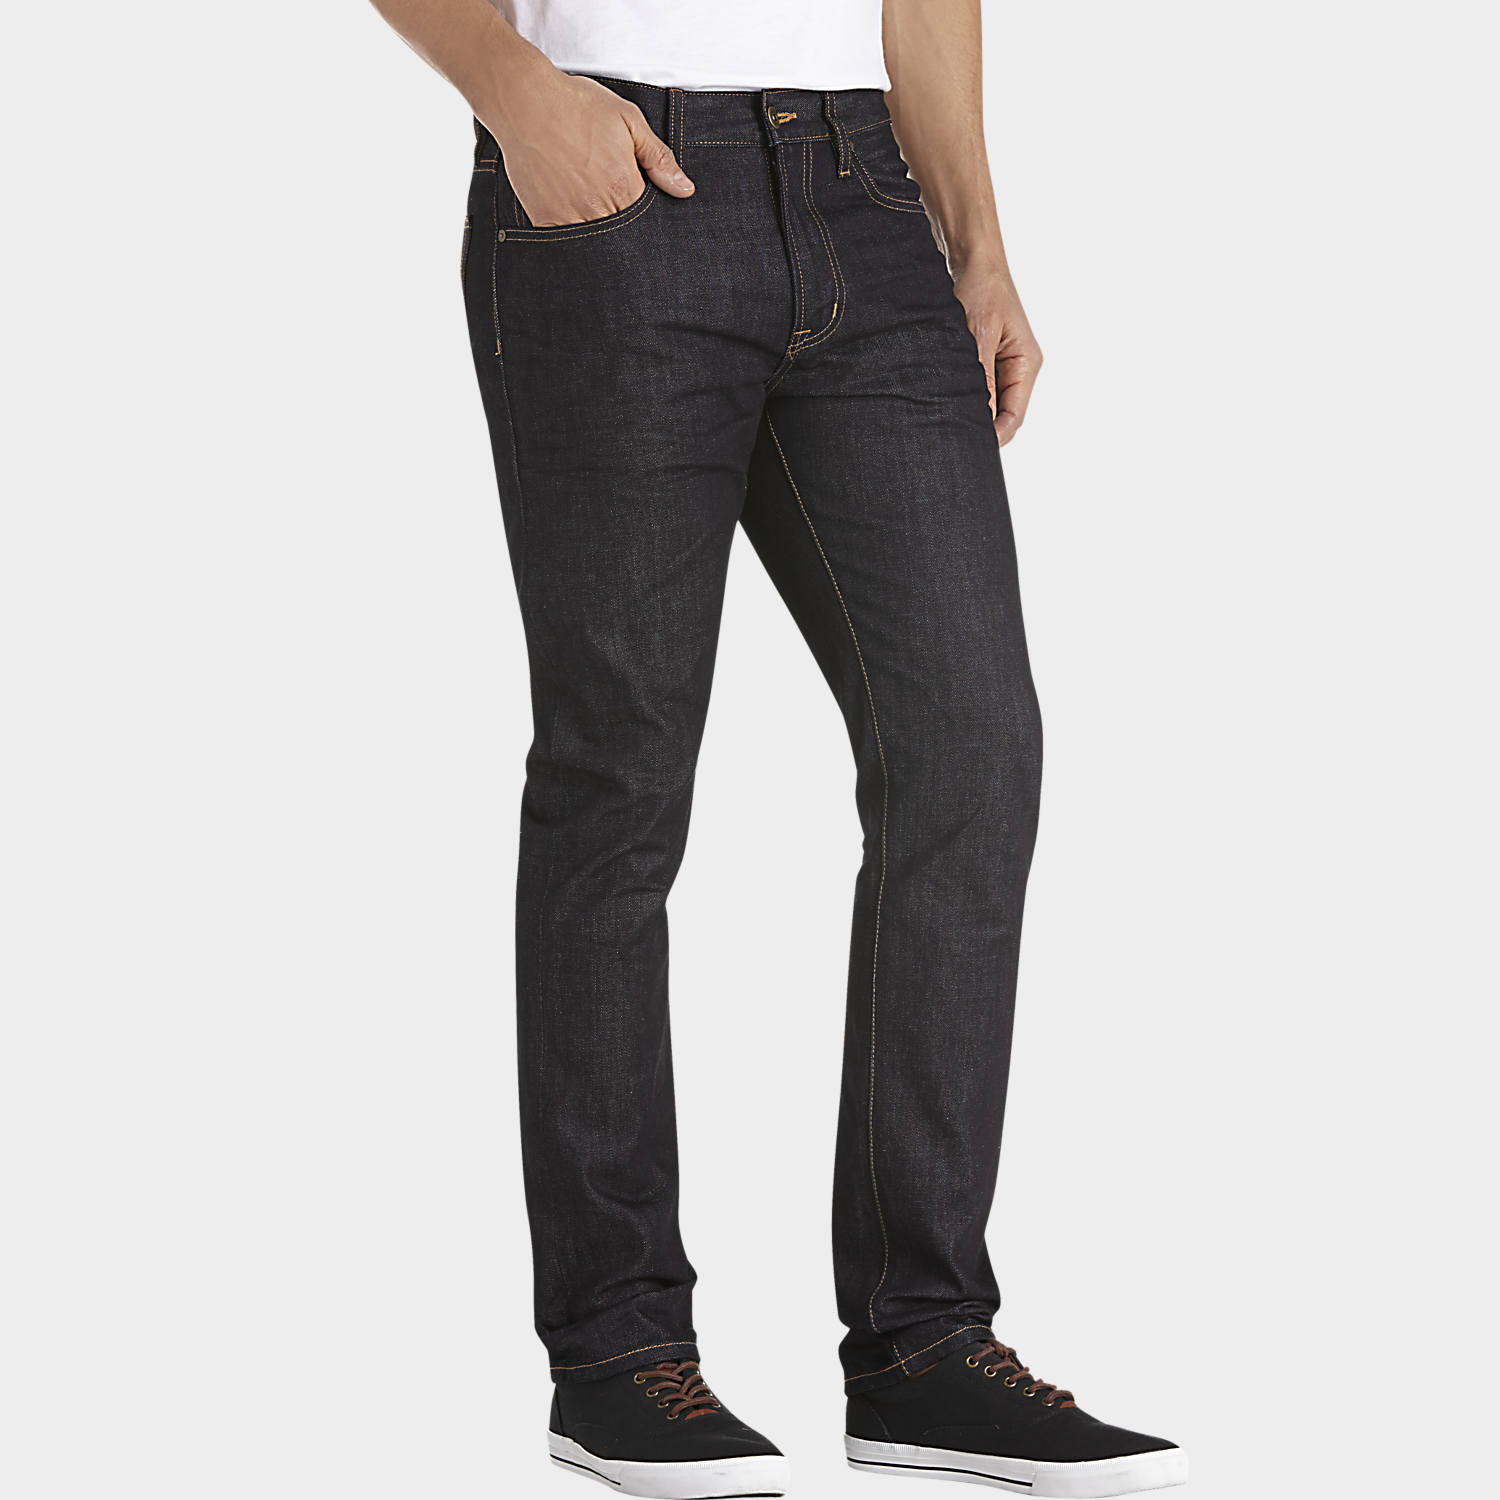 How slim fit jeans can give you the best look